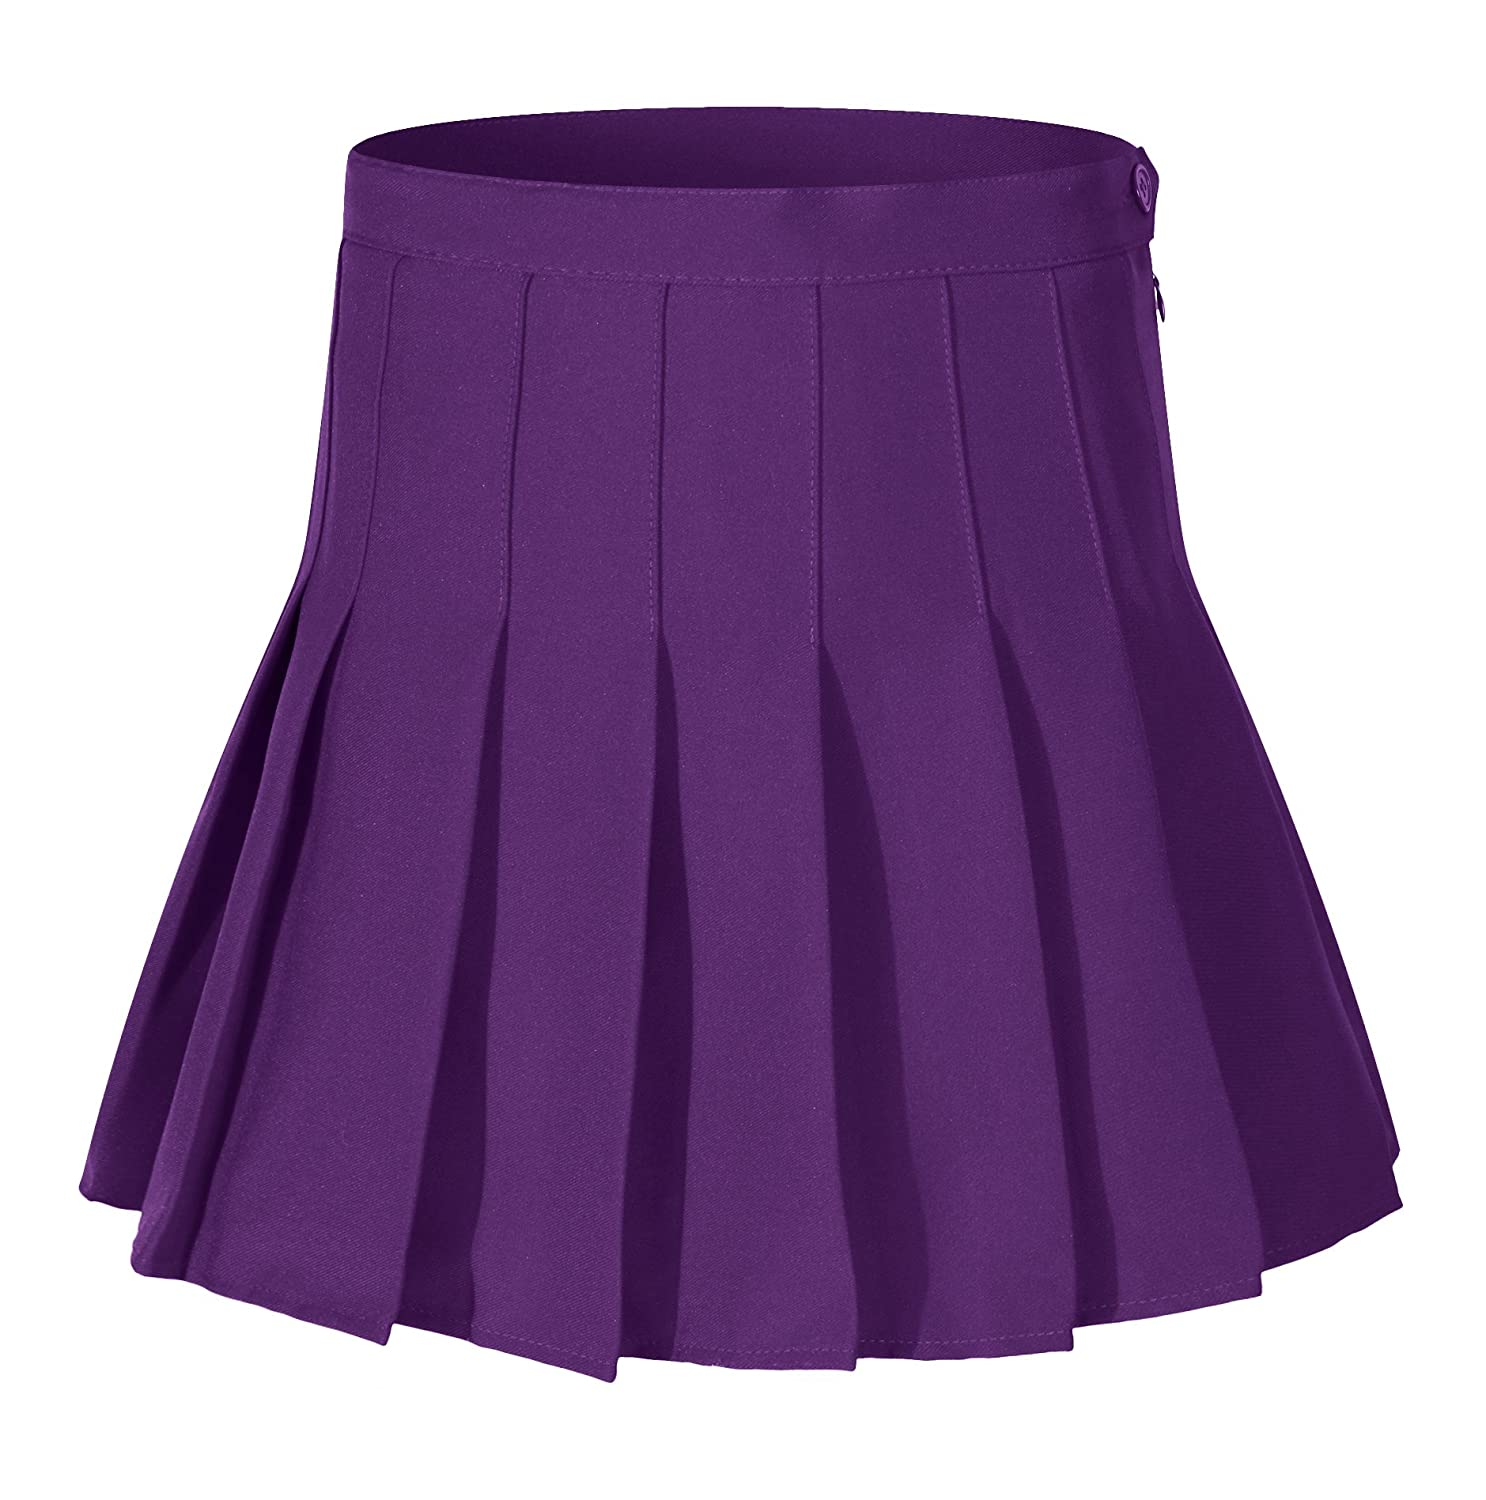 Women High waisted Solid Pleated Mini Tennis Skorts Or Skirt 13 Colors 2 Styles yiwu yucong factory HTSK06